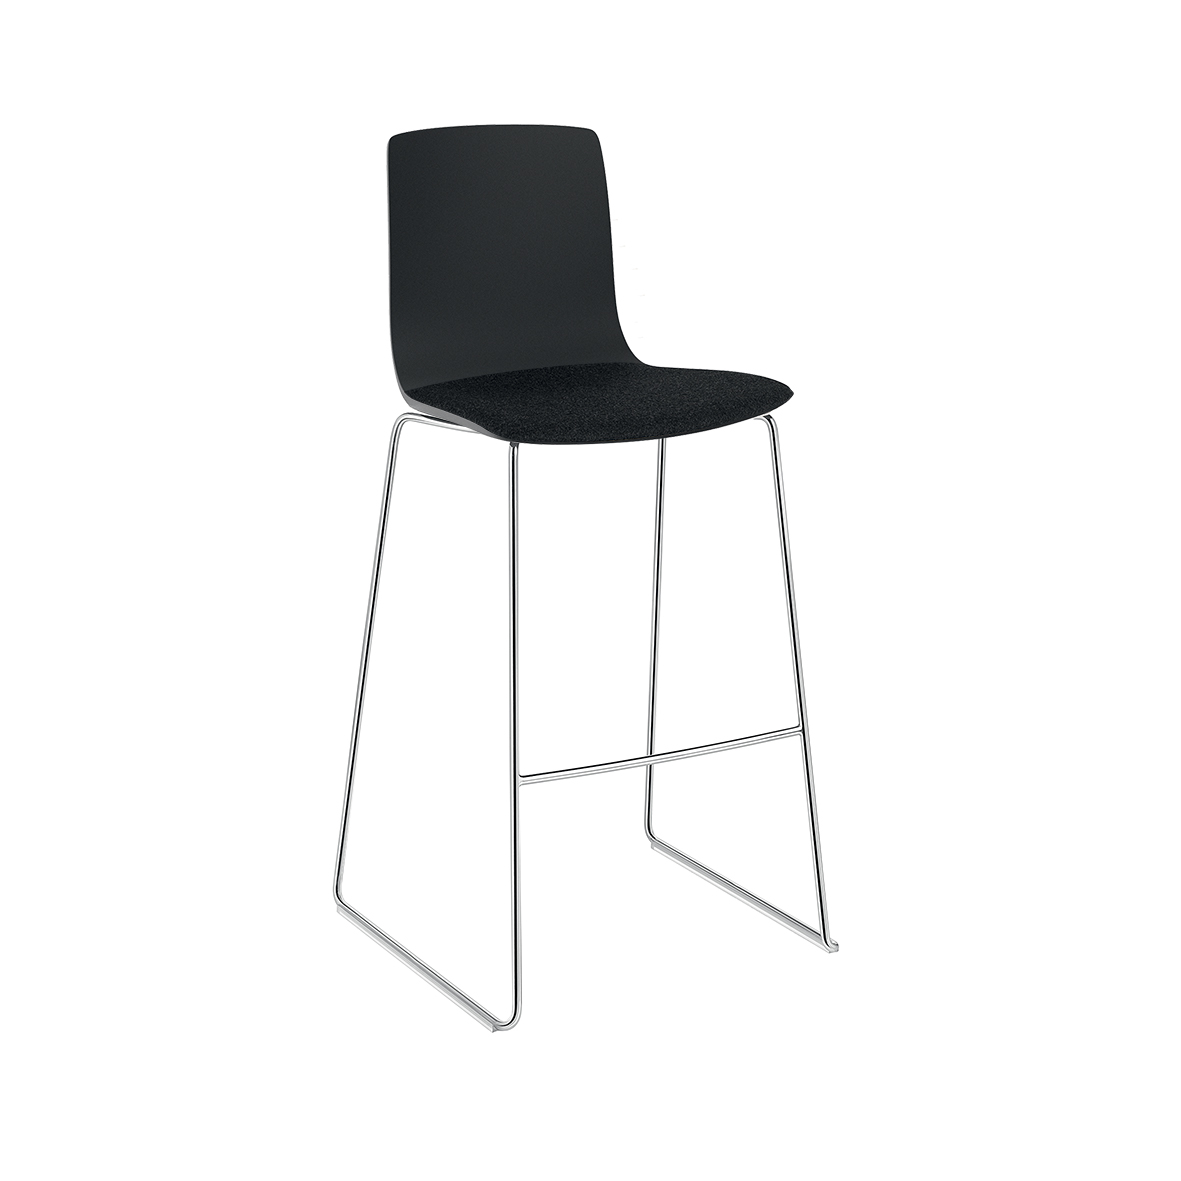 Aava 3961 chair by Arper